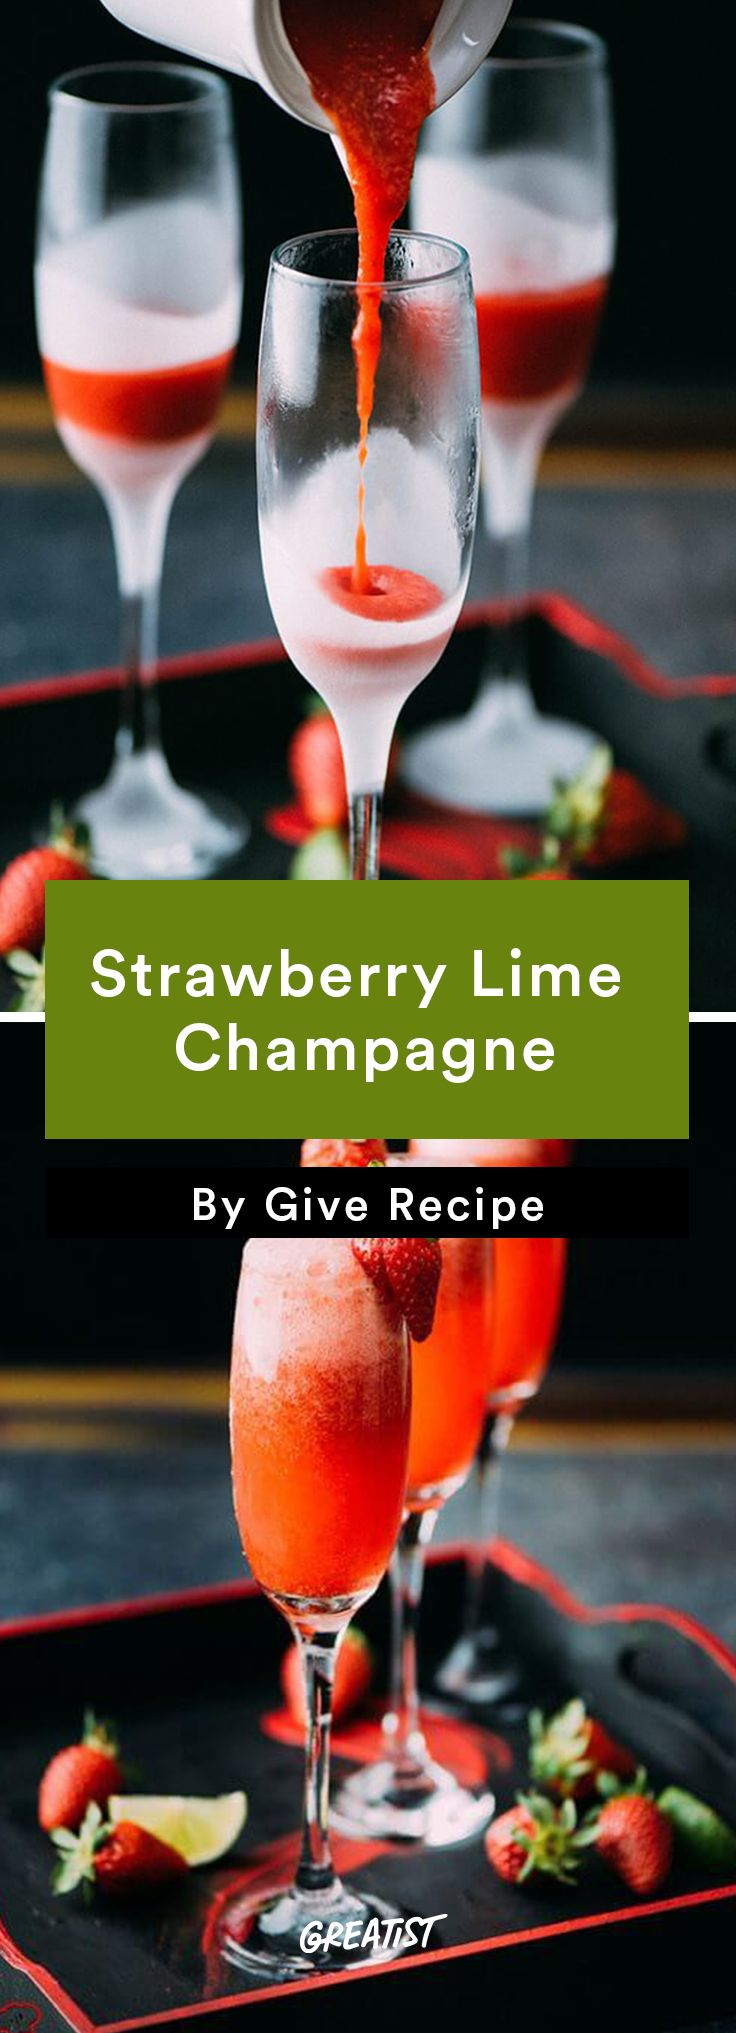 9 Champagne Cocktails That One Up Boring Mimosas Strawberry Lime Champagne Champagne Recipe Champagne Cocktail